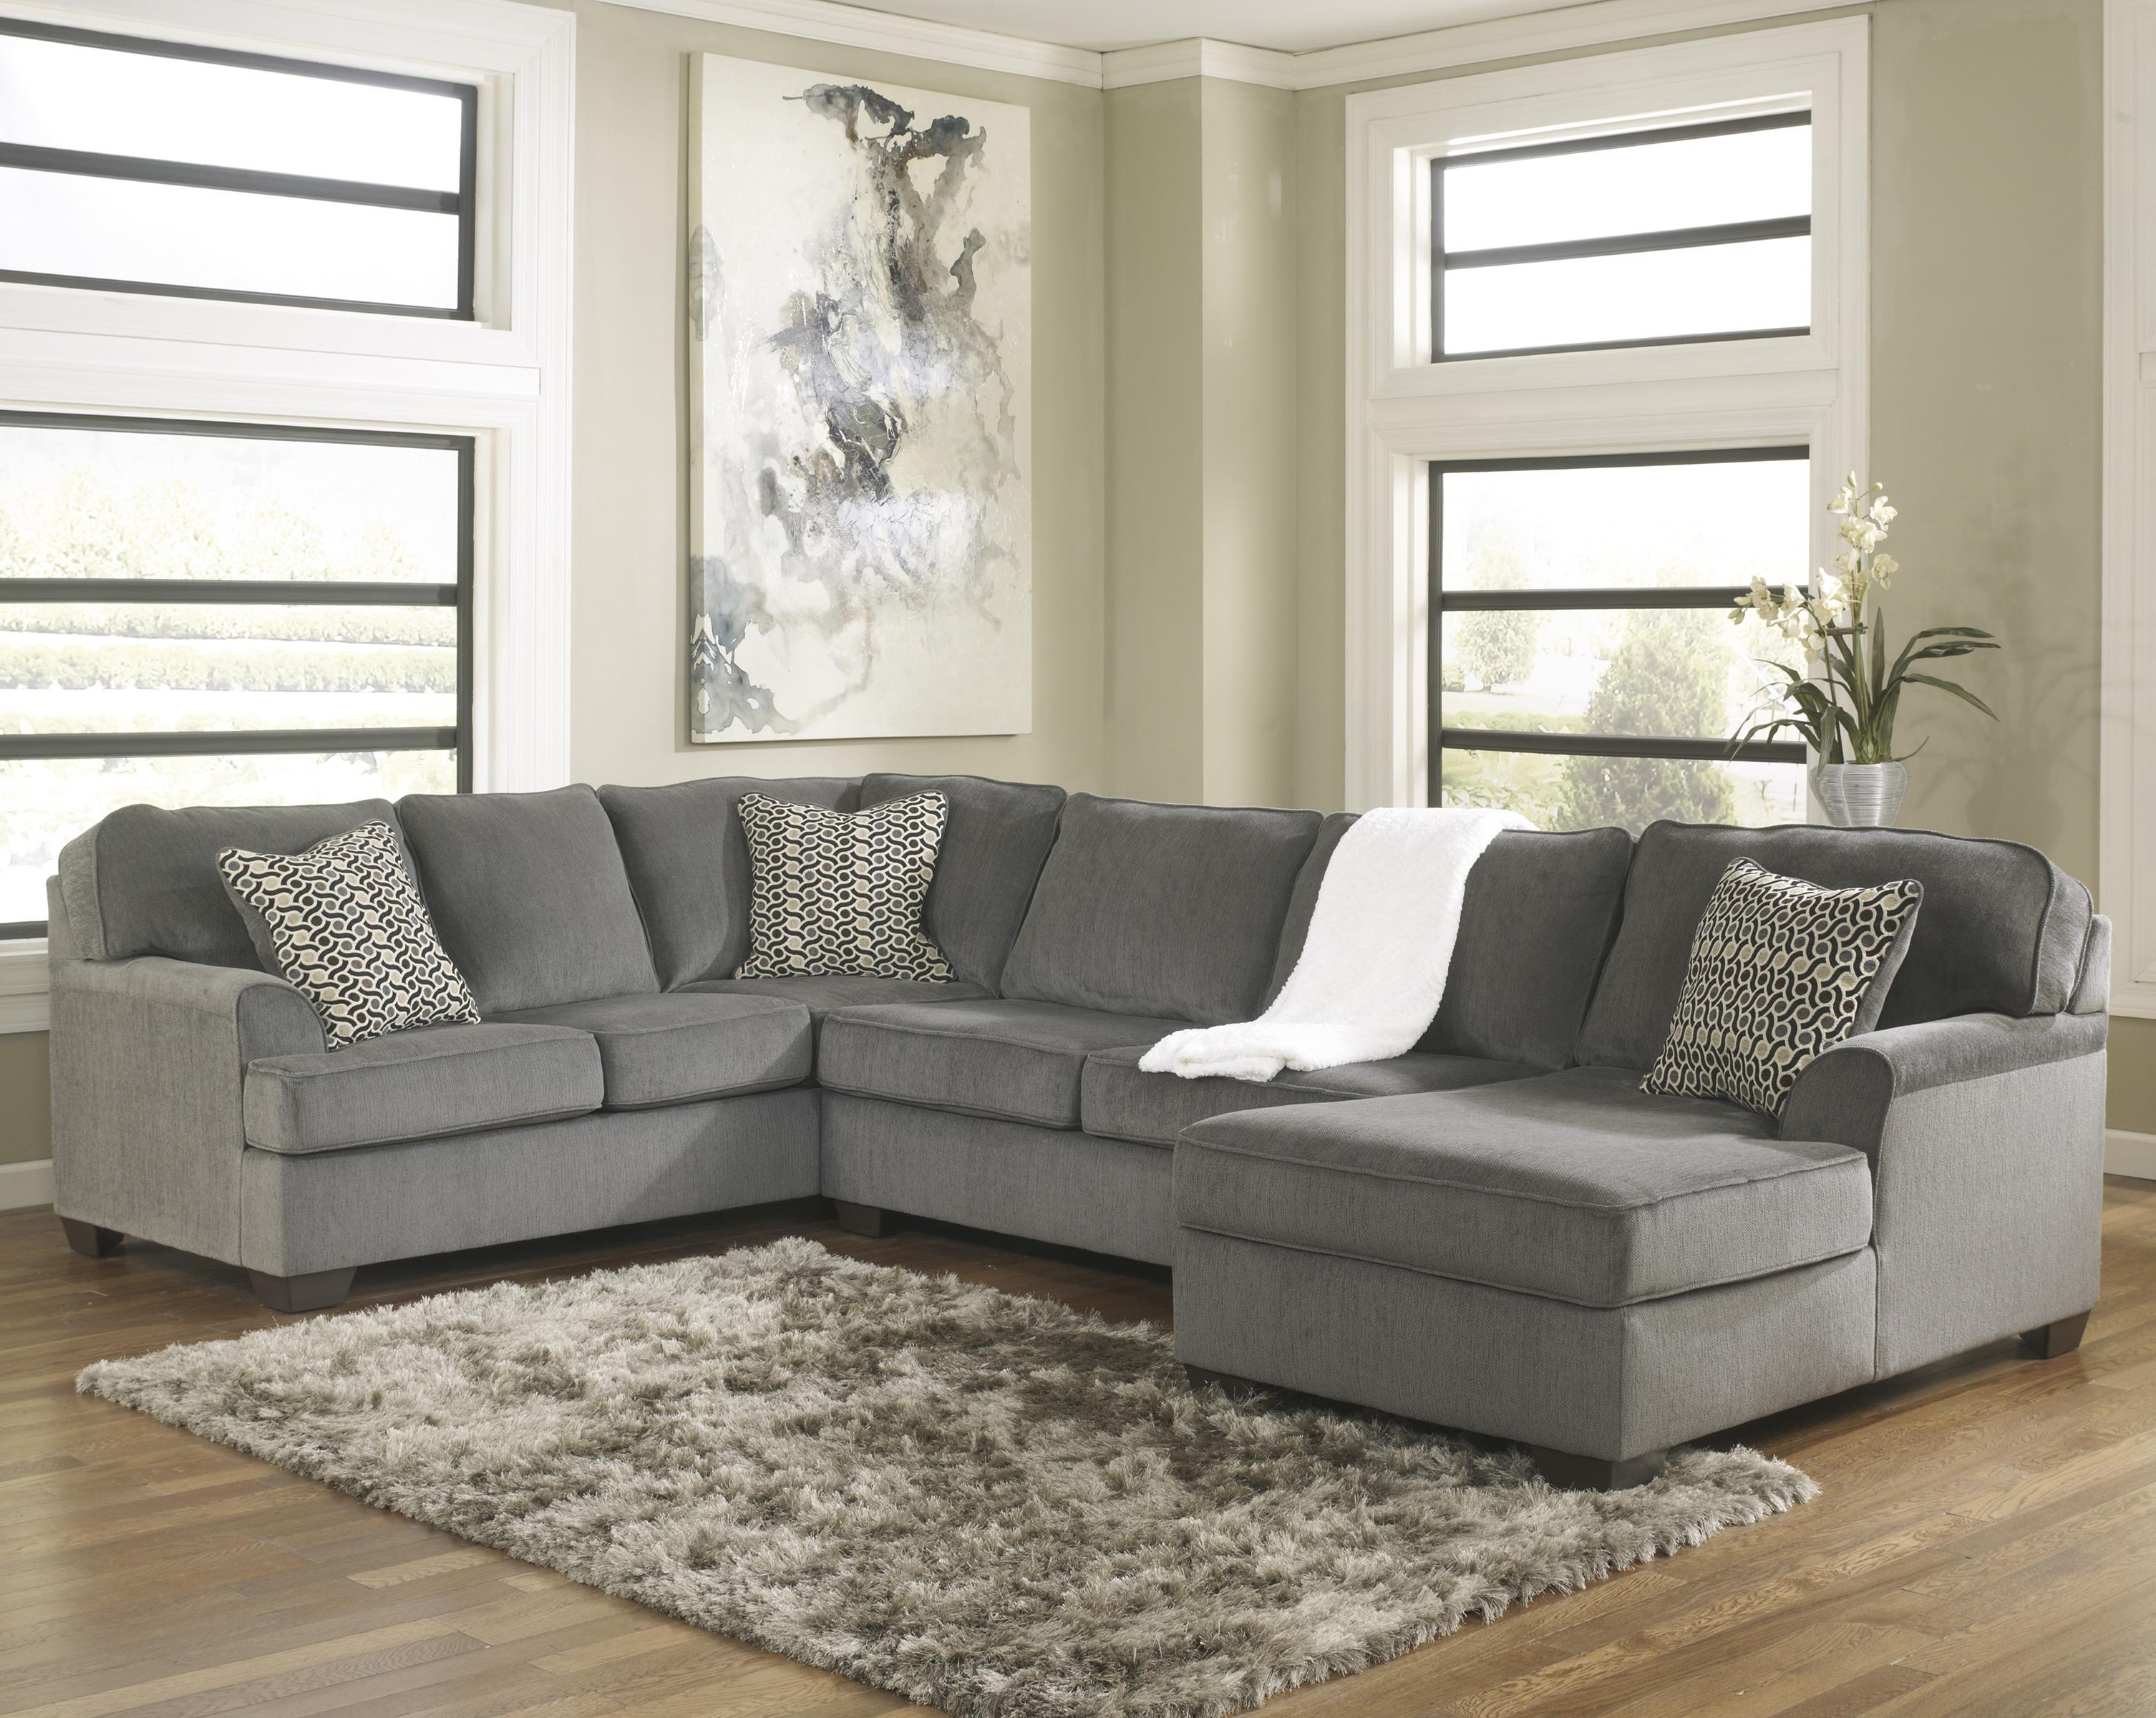 Ashley Furniture Sofa Chaises Intended For Well Liked Ashley Furniture Loric – Smoke Contemporary 3 Piece Sectional With (View 11 of 15)